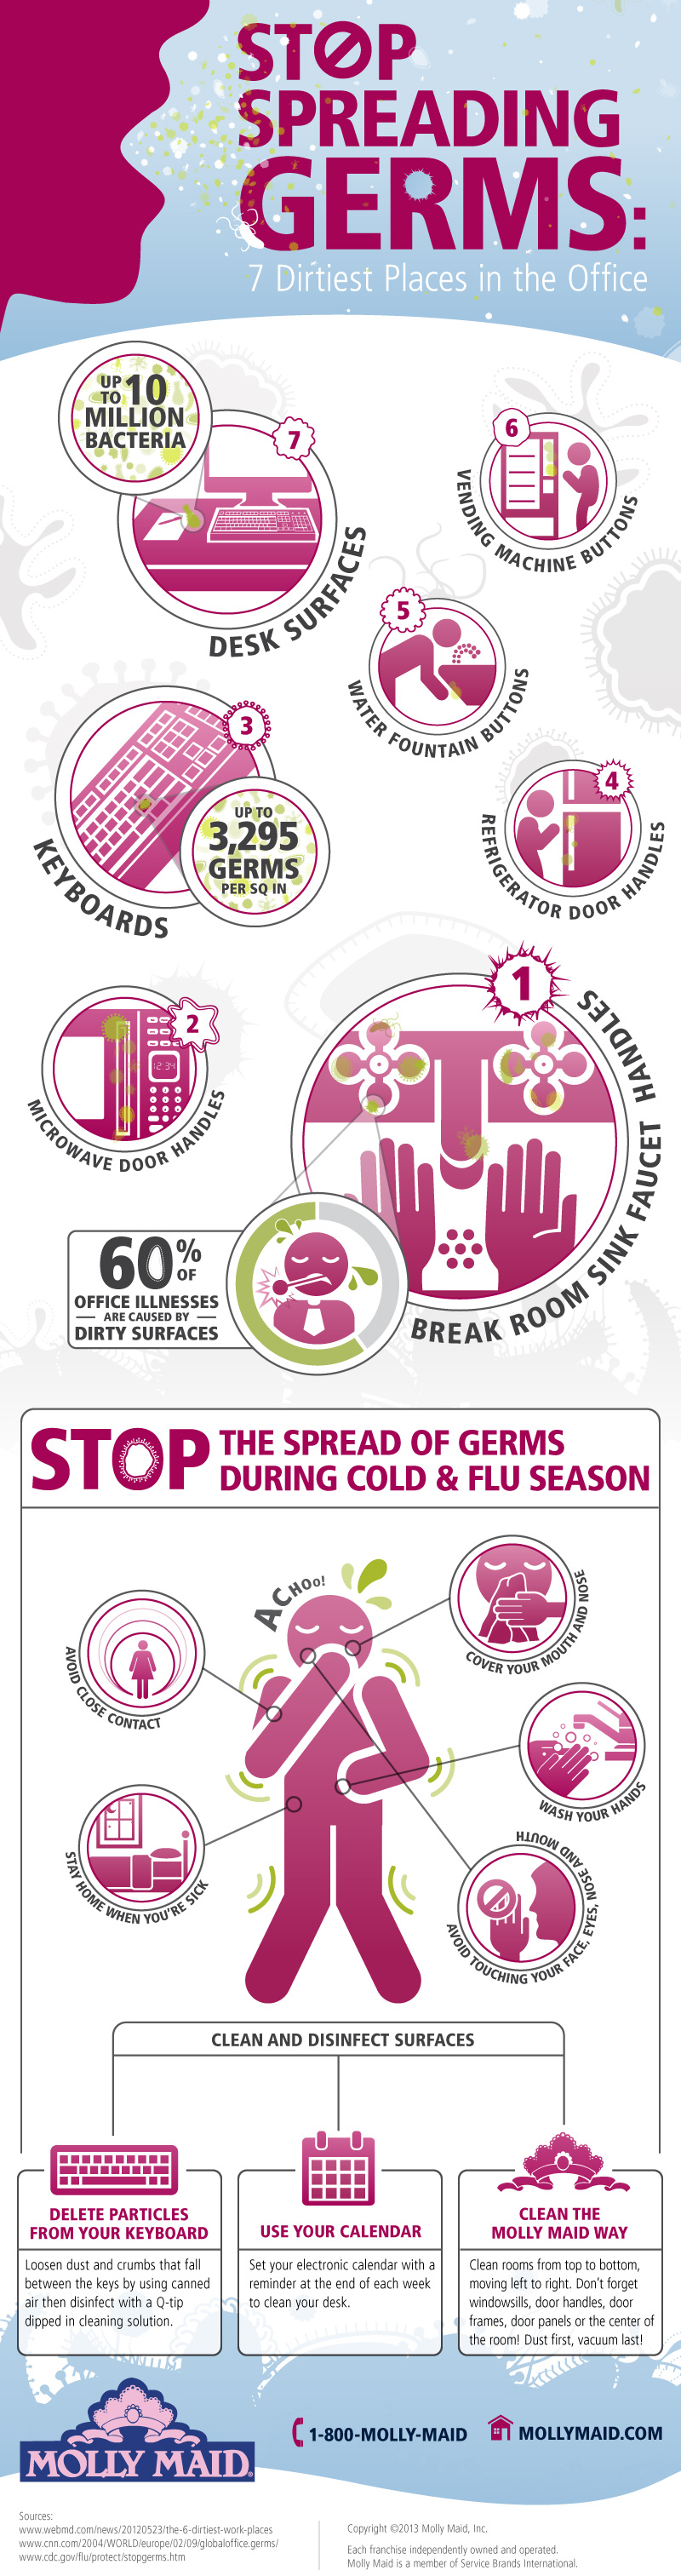 how to stop spreading germs at work